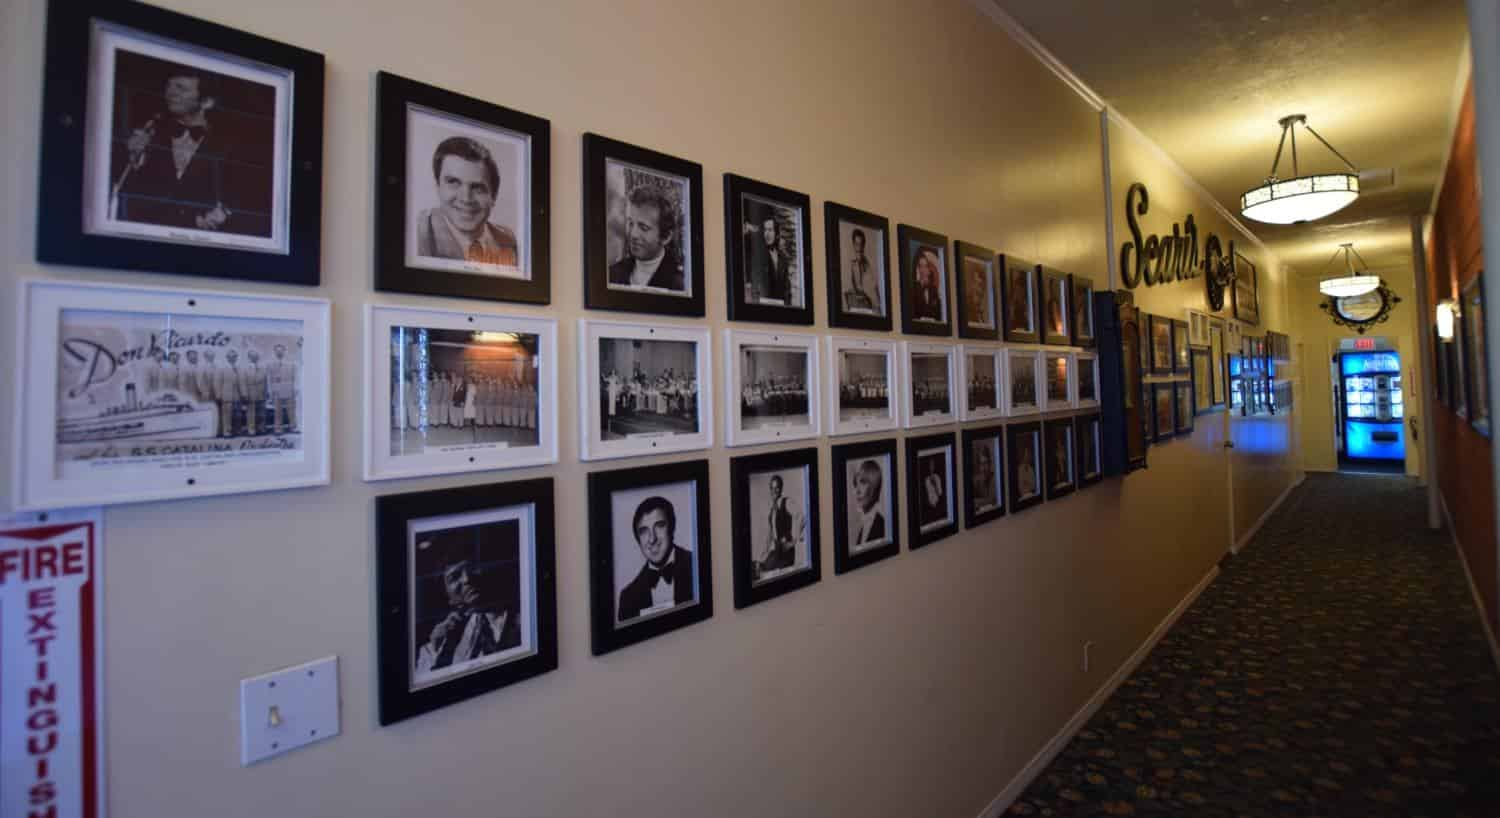 Long hallway with wall filled with photos of famous people